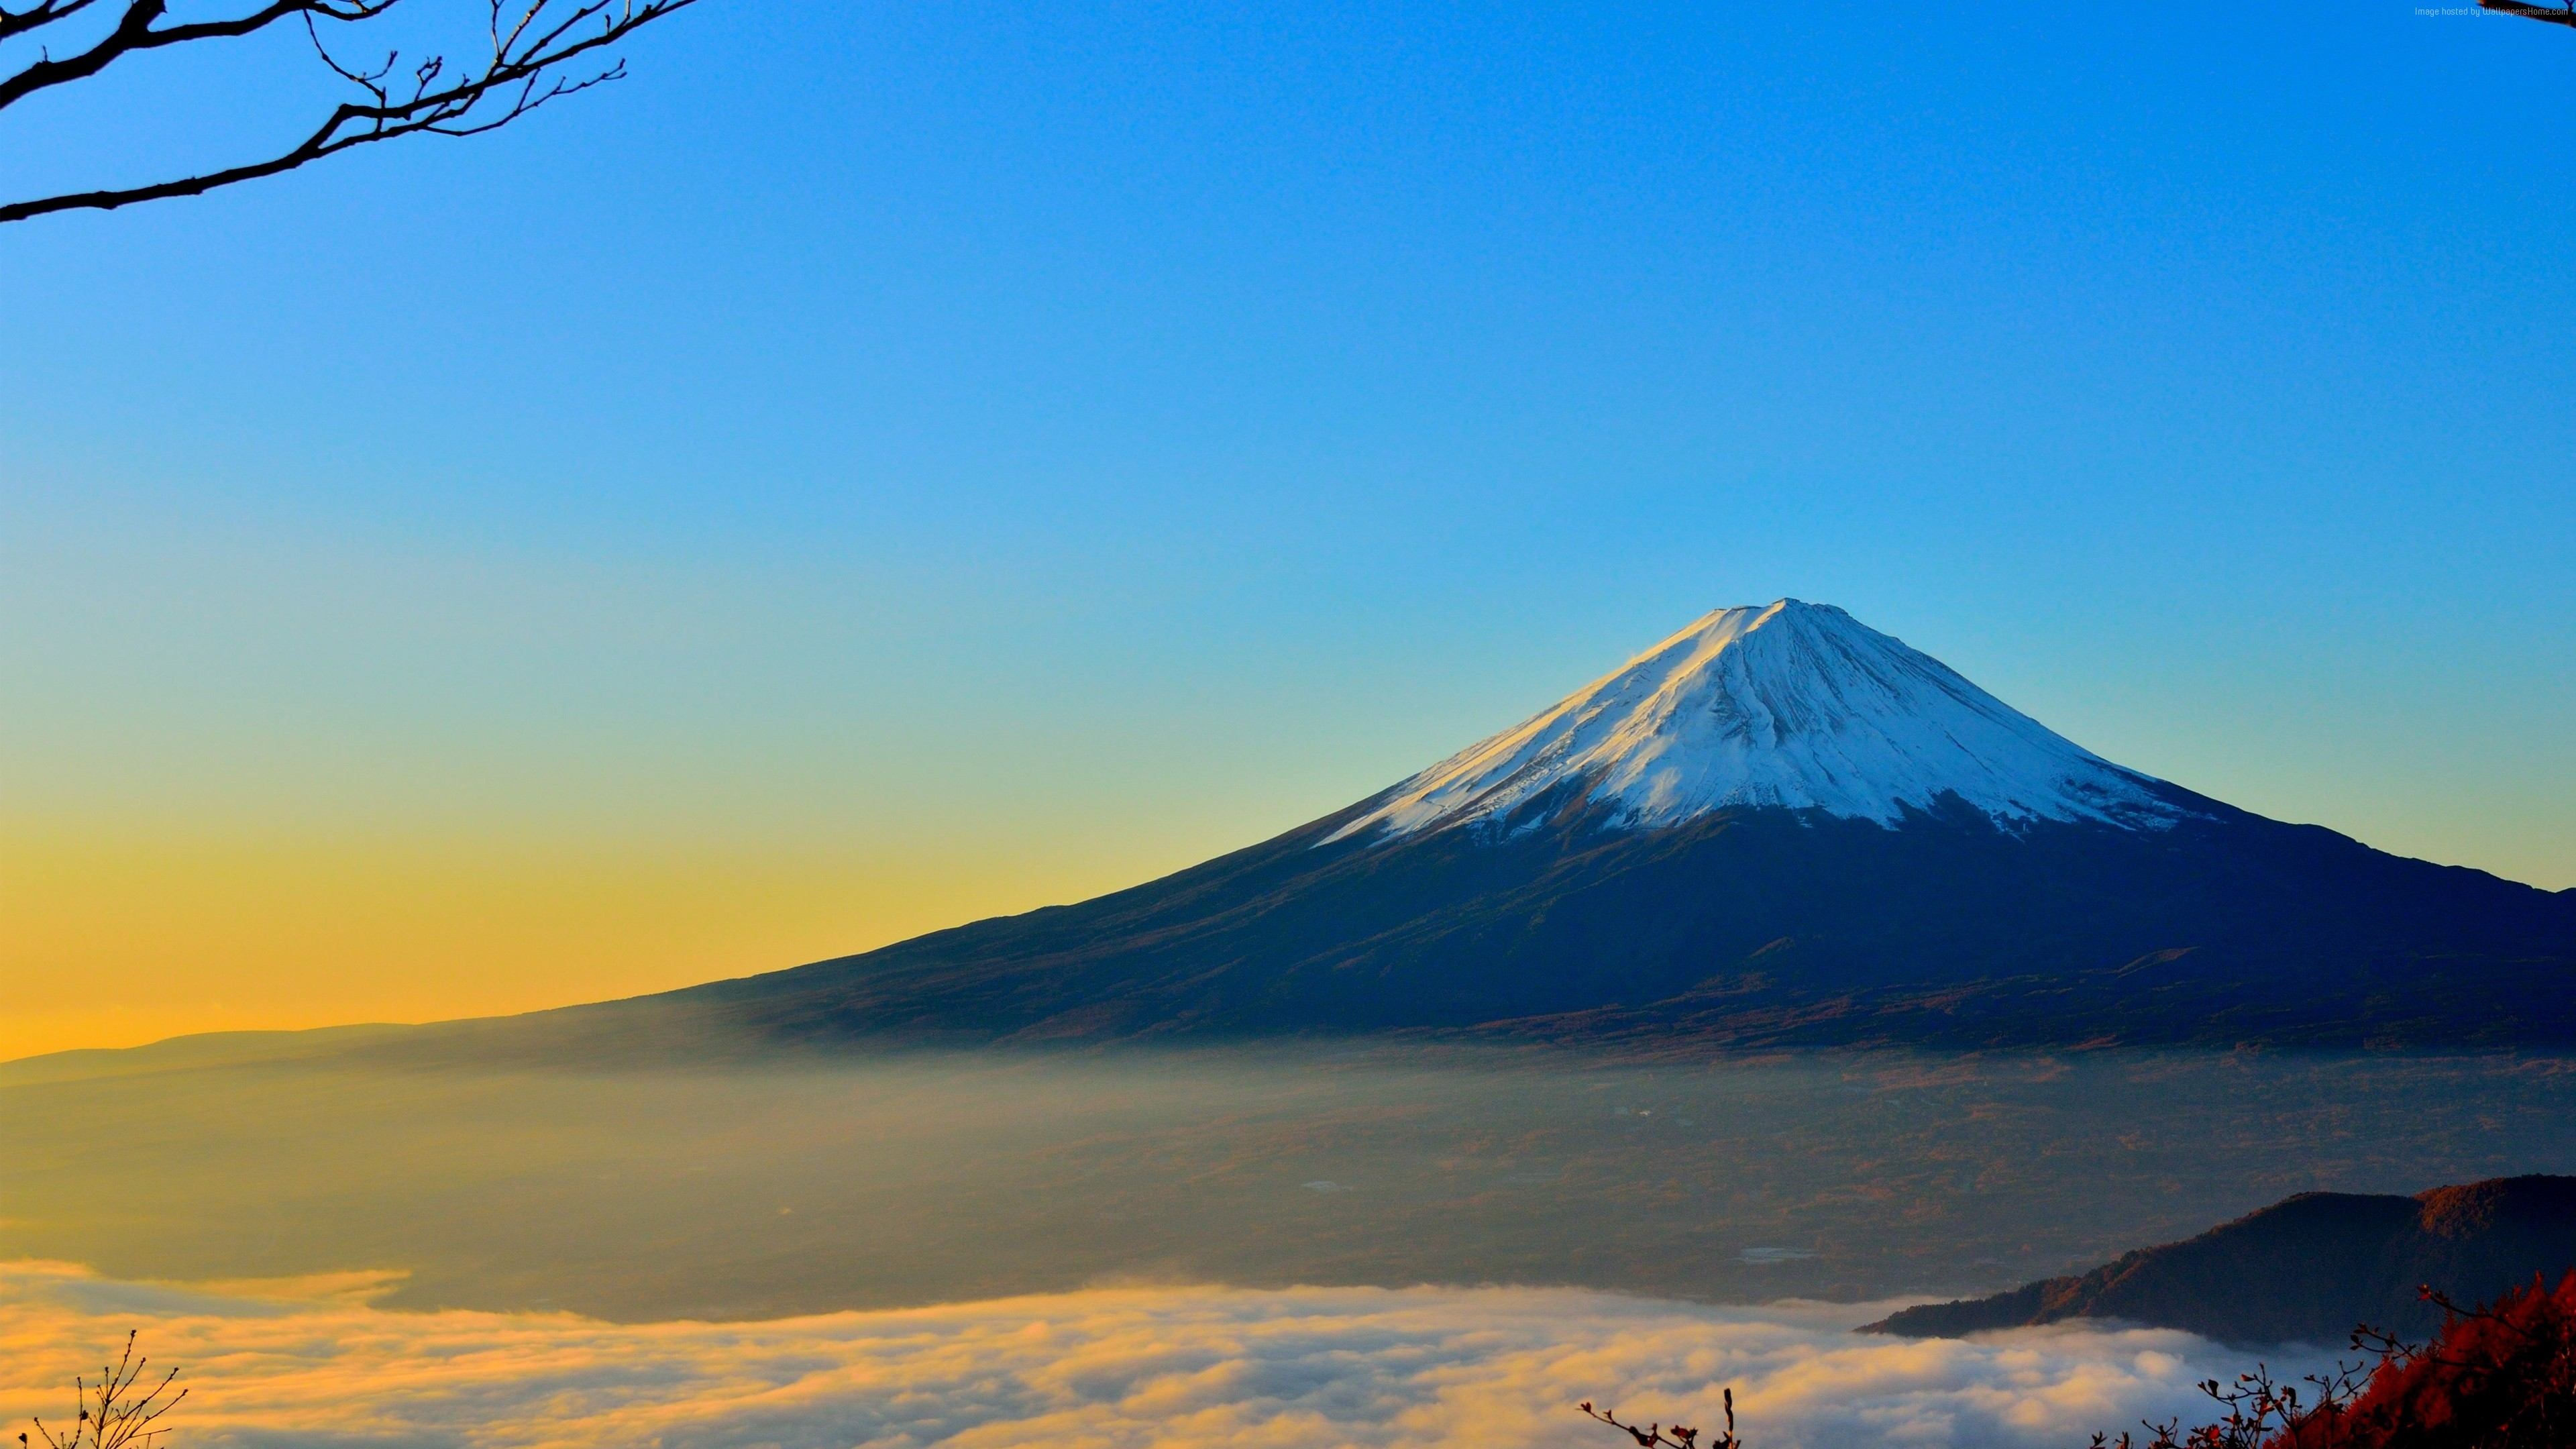 Wallpaper volcano, Fuji, Japan, mountains, fog, 4k, Travel